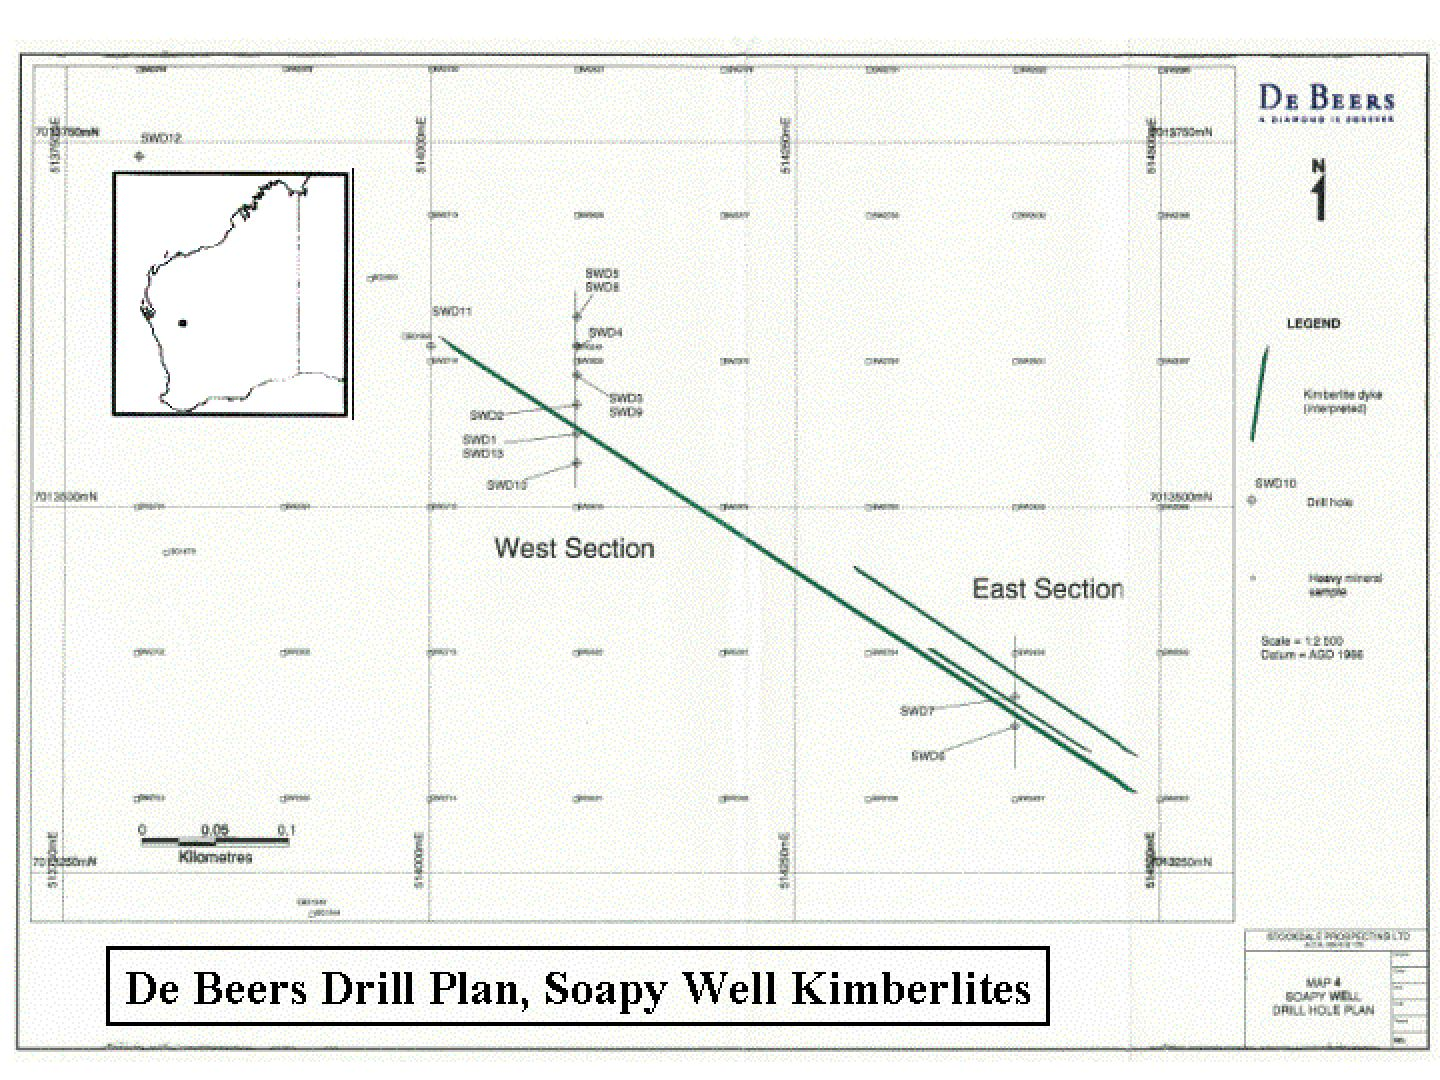 De Beers Drill Plan - Soapy Bore